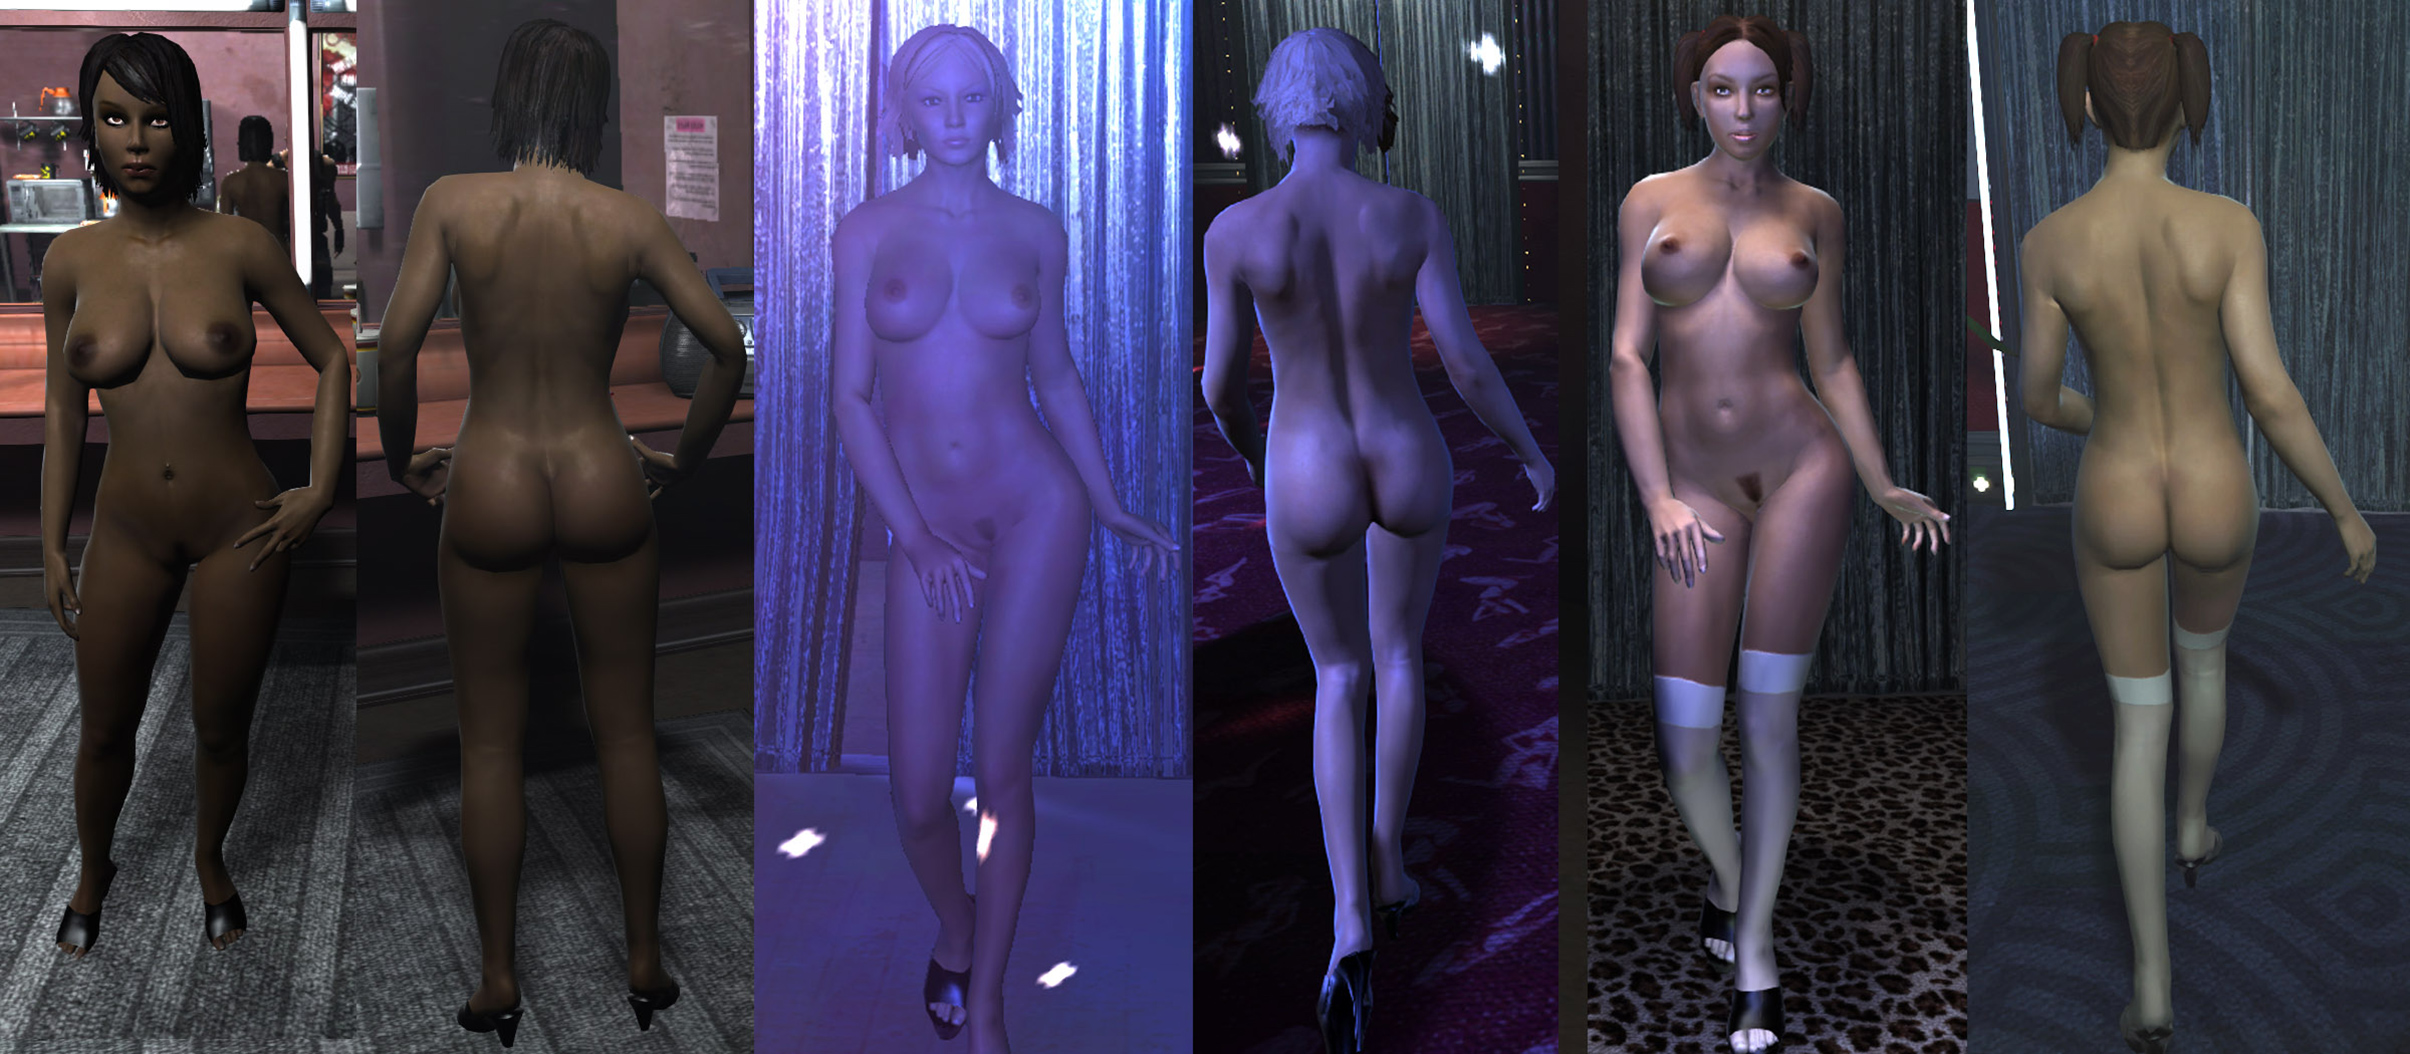 Kotor 2 nude mode nude girls